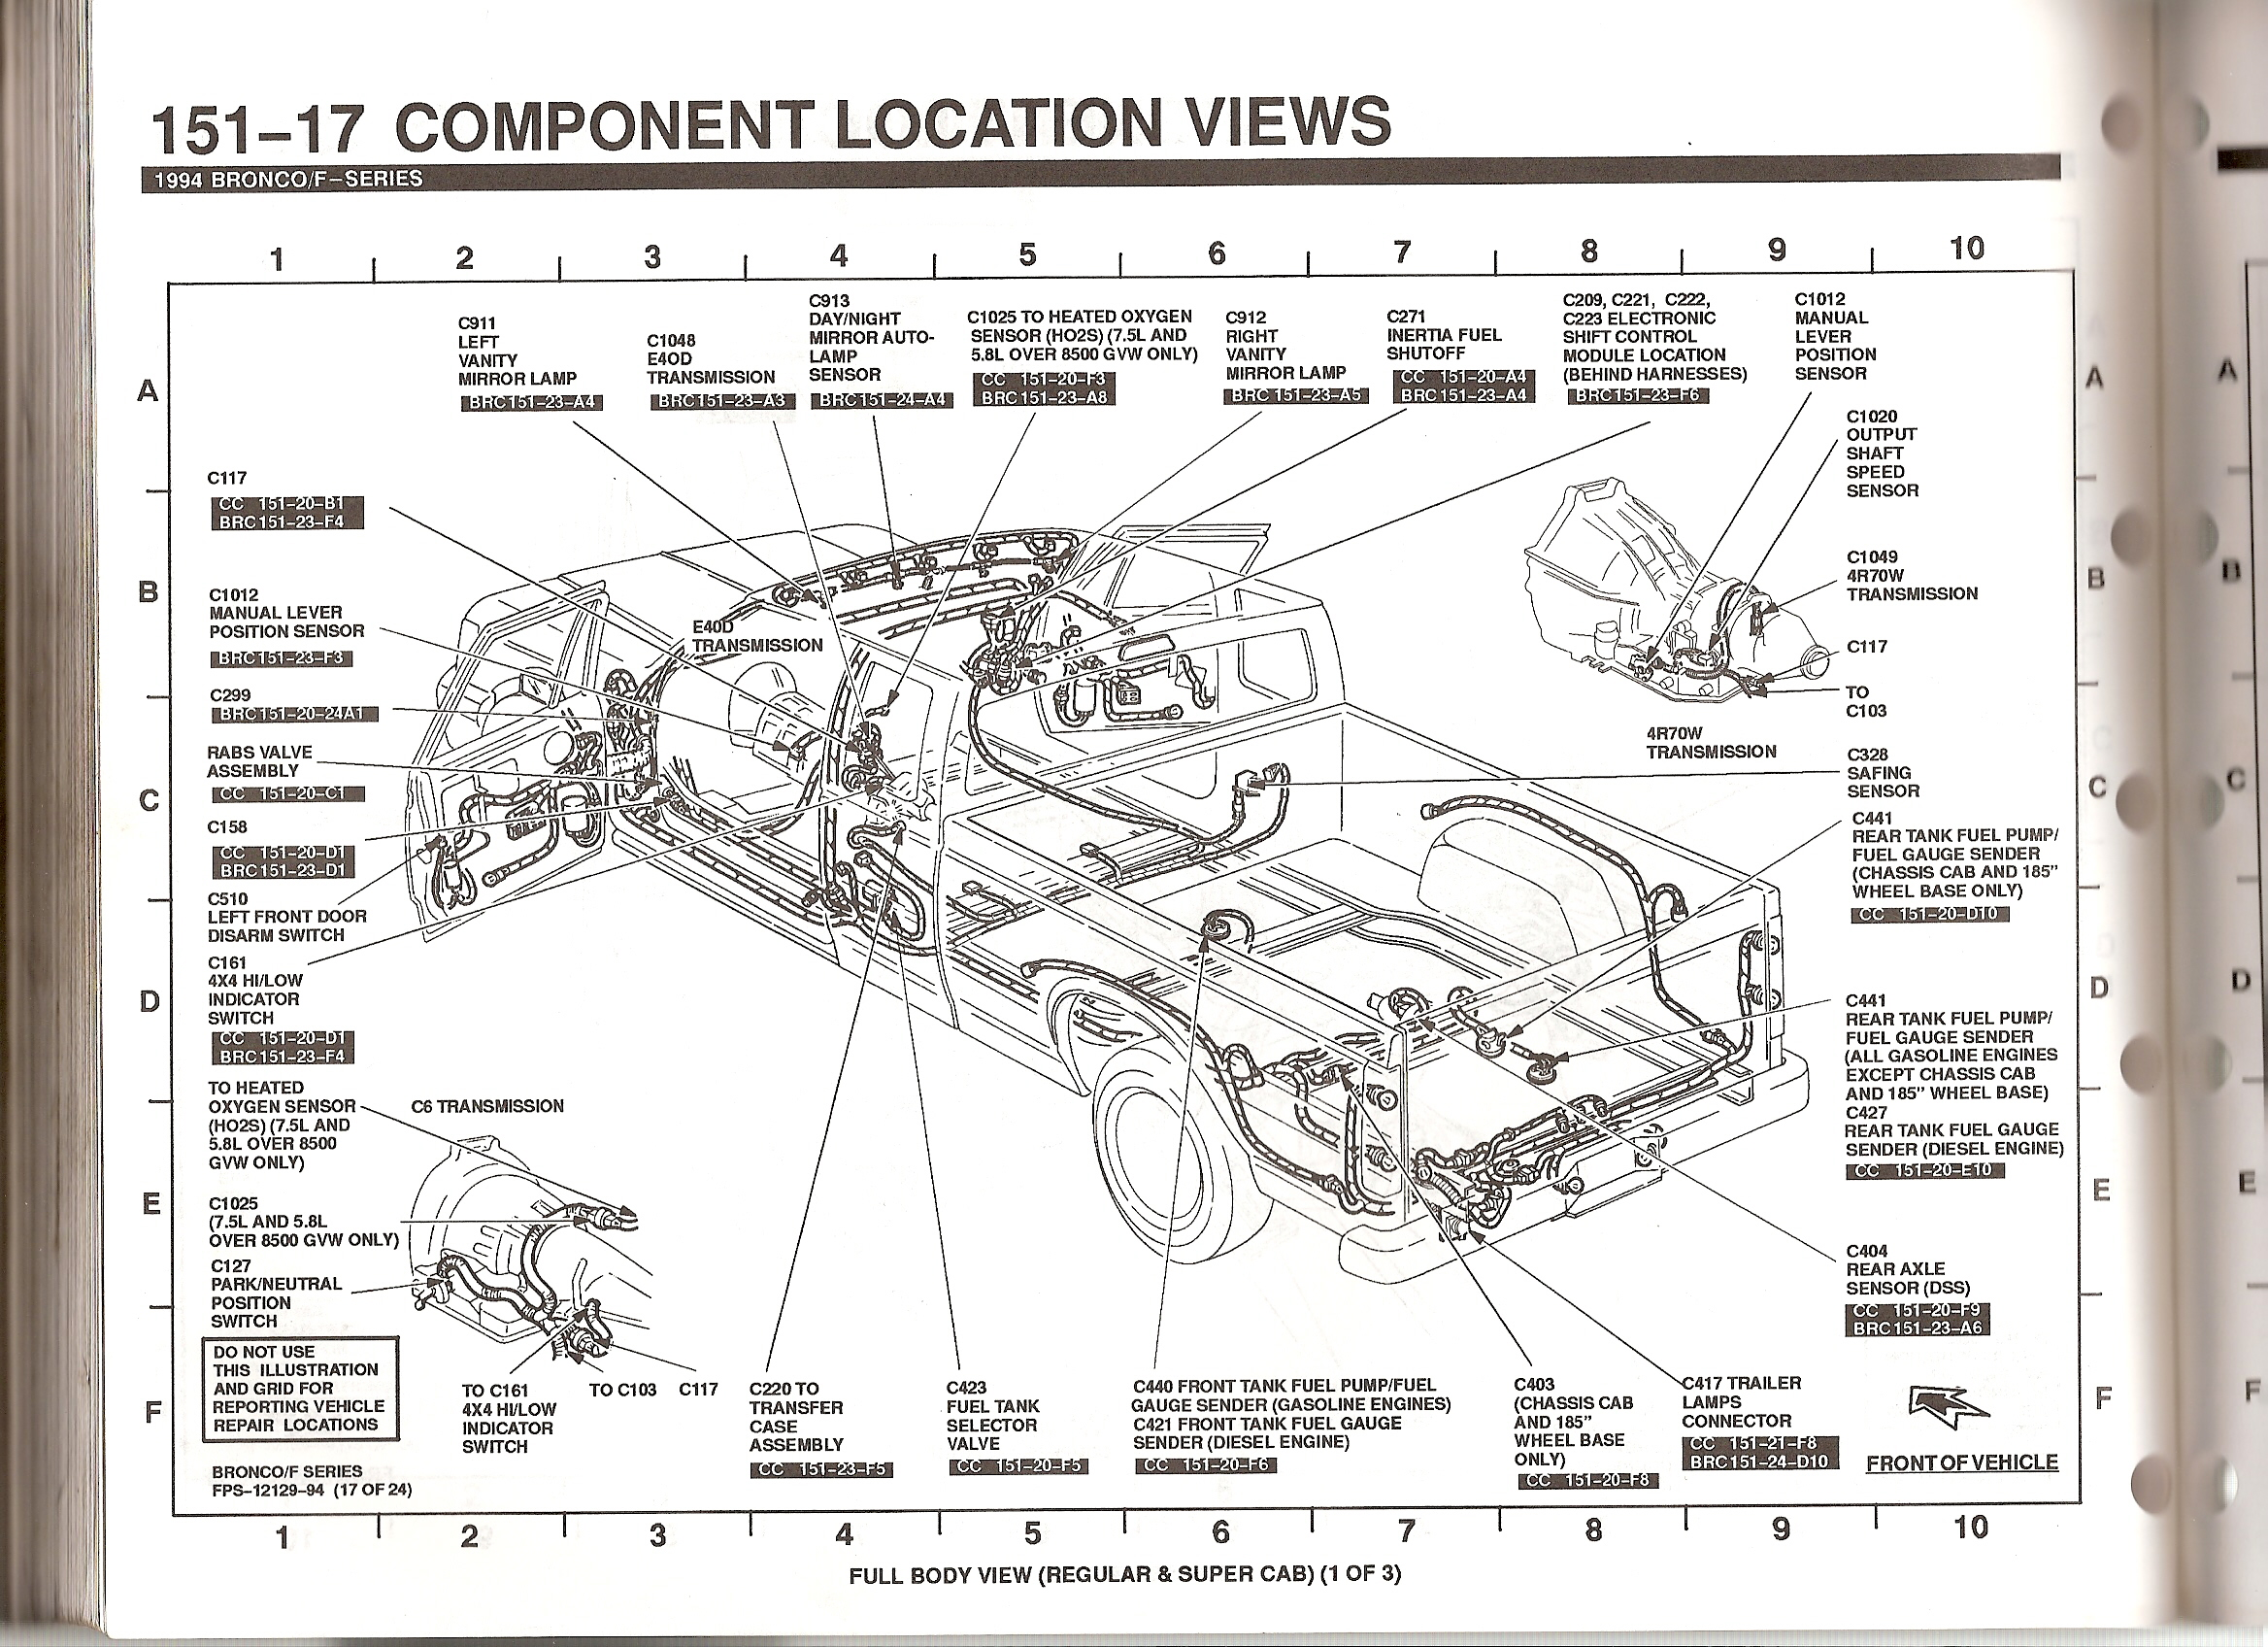 1994 Ford Bronco Overhead Console Wiring Diagram Picture 4r70w Transmission